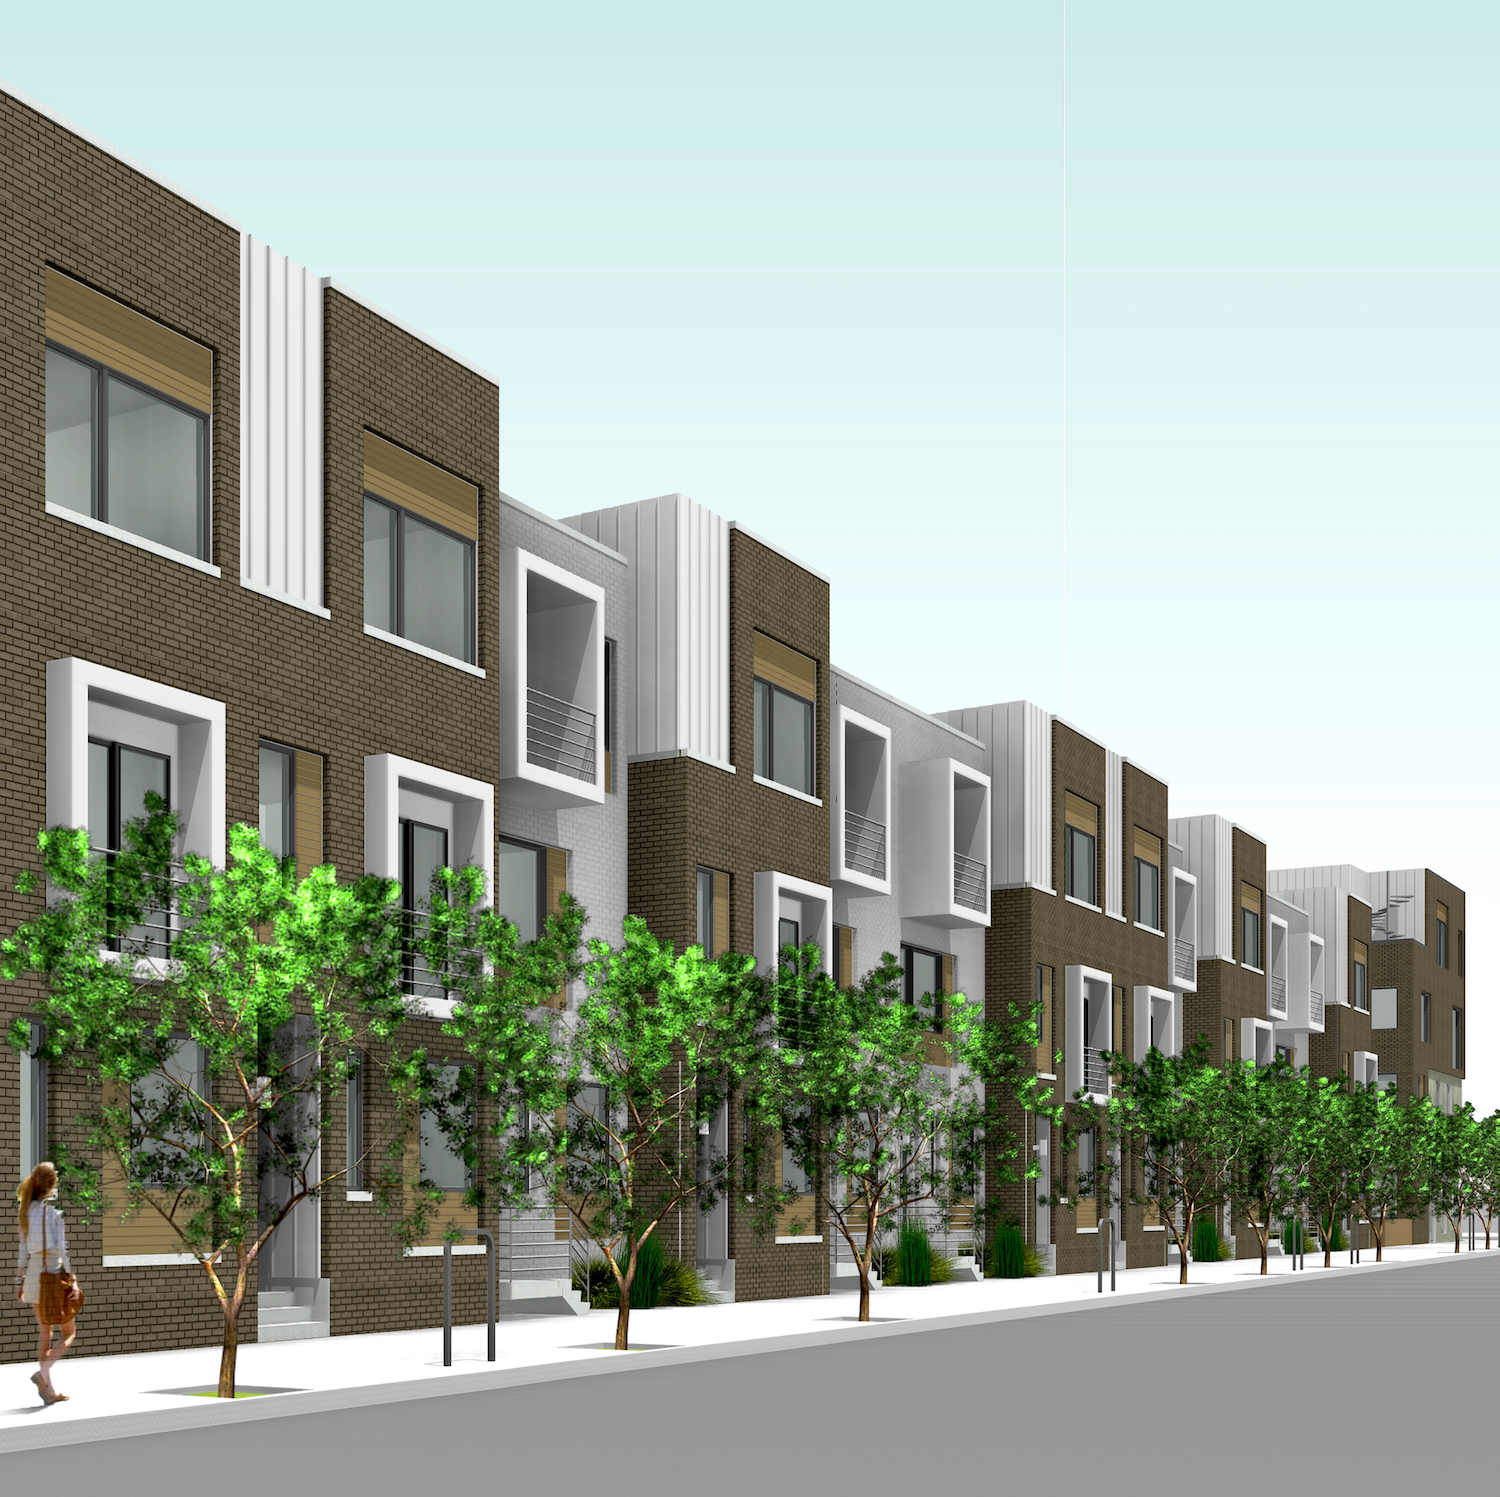 3D View 2 - N- 5th Street - Rendered edited for web.jpg